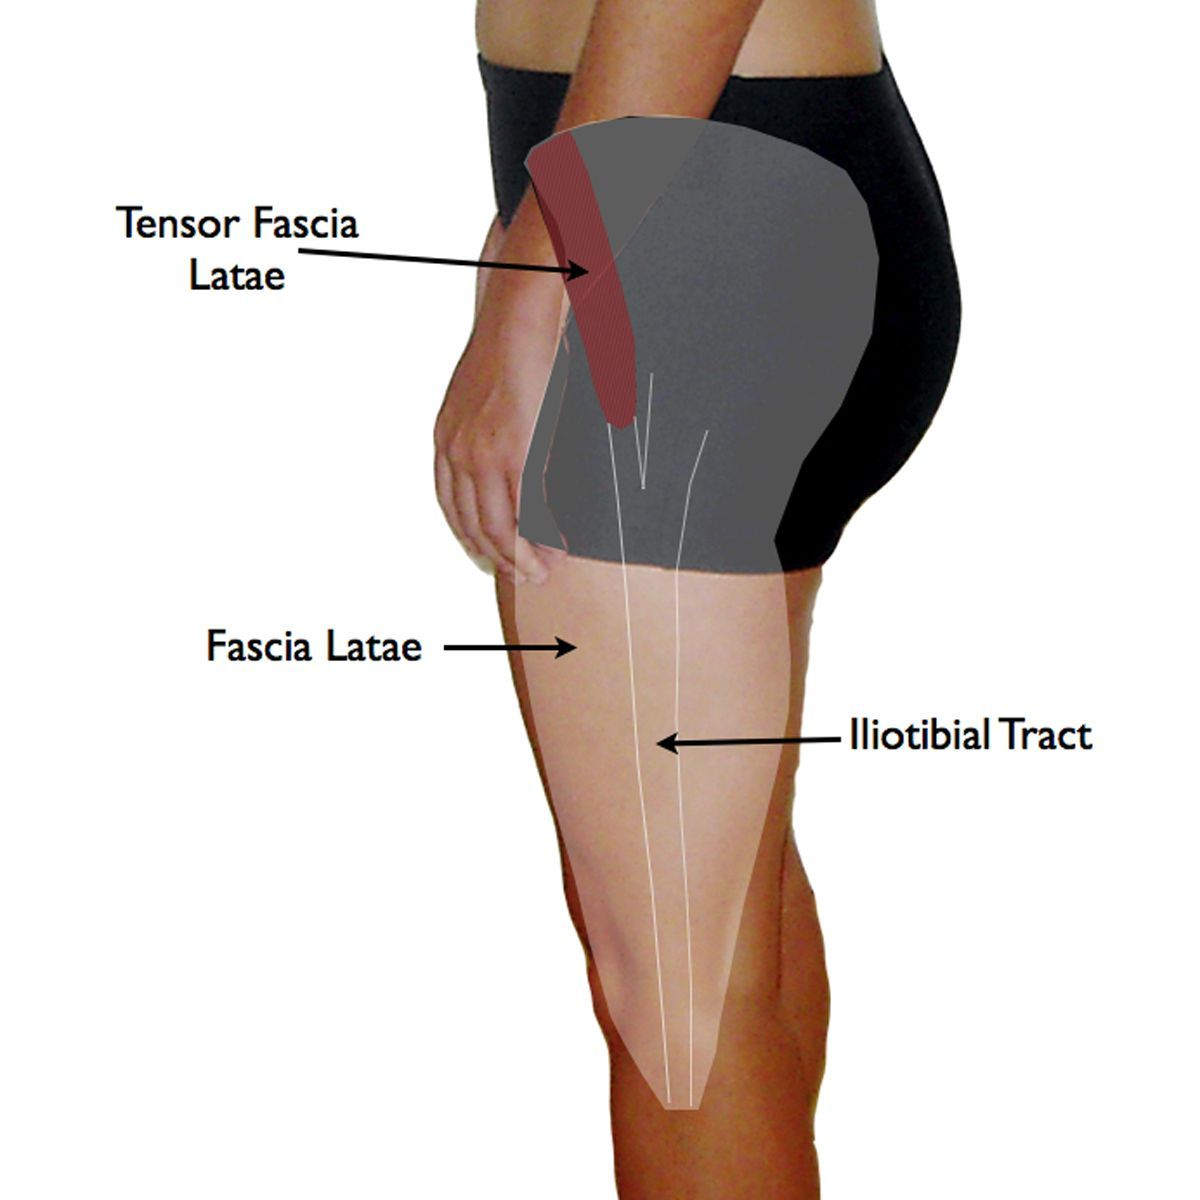 Tensor Fascia Lata Trigger Point: The IT Band Syndrome and Hip Pain ...